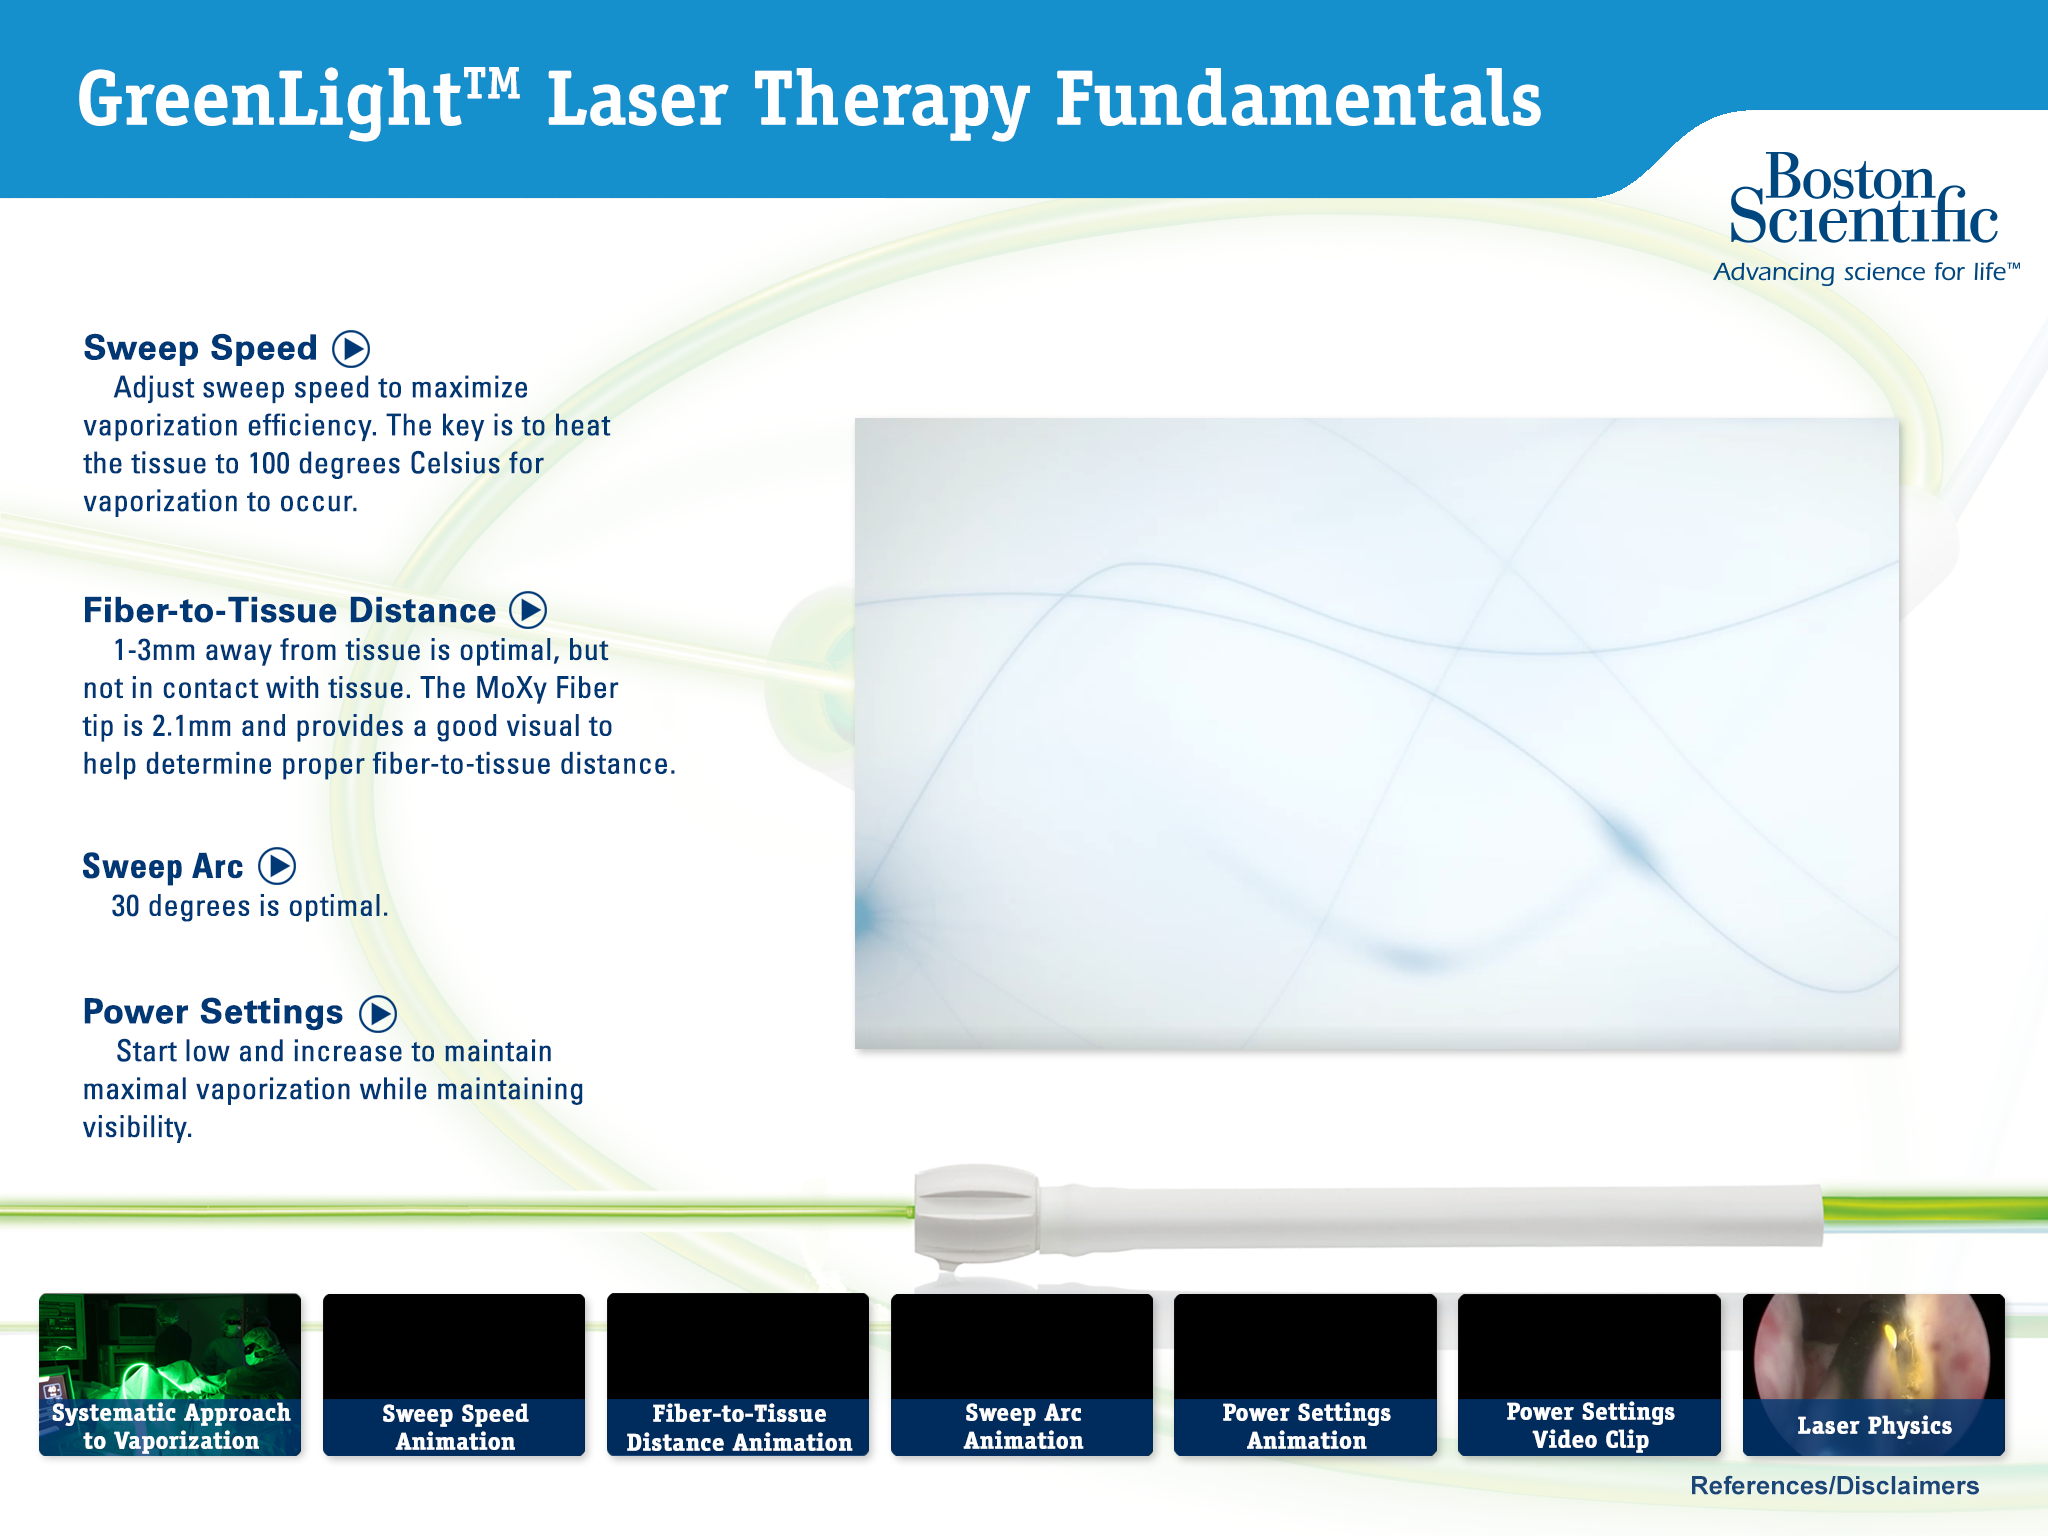 GreenLight Laser Therapy Fundamentals